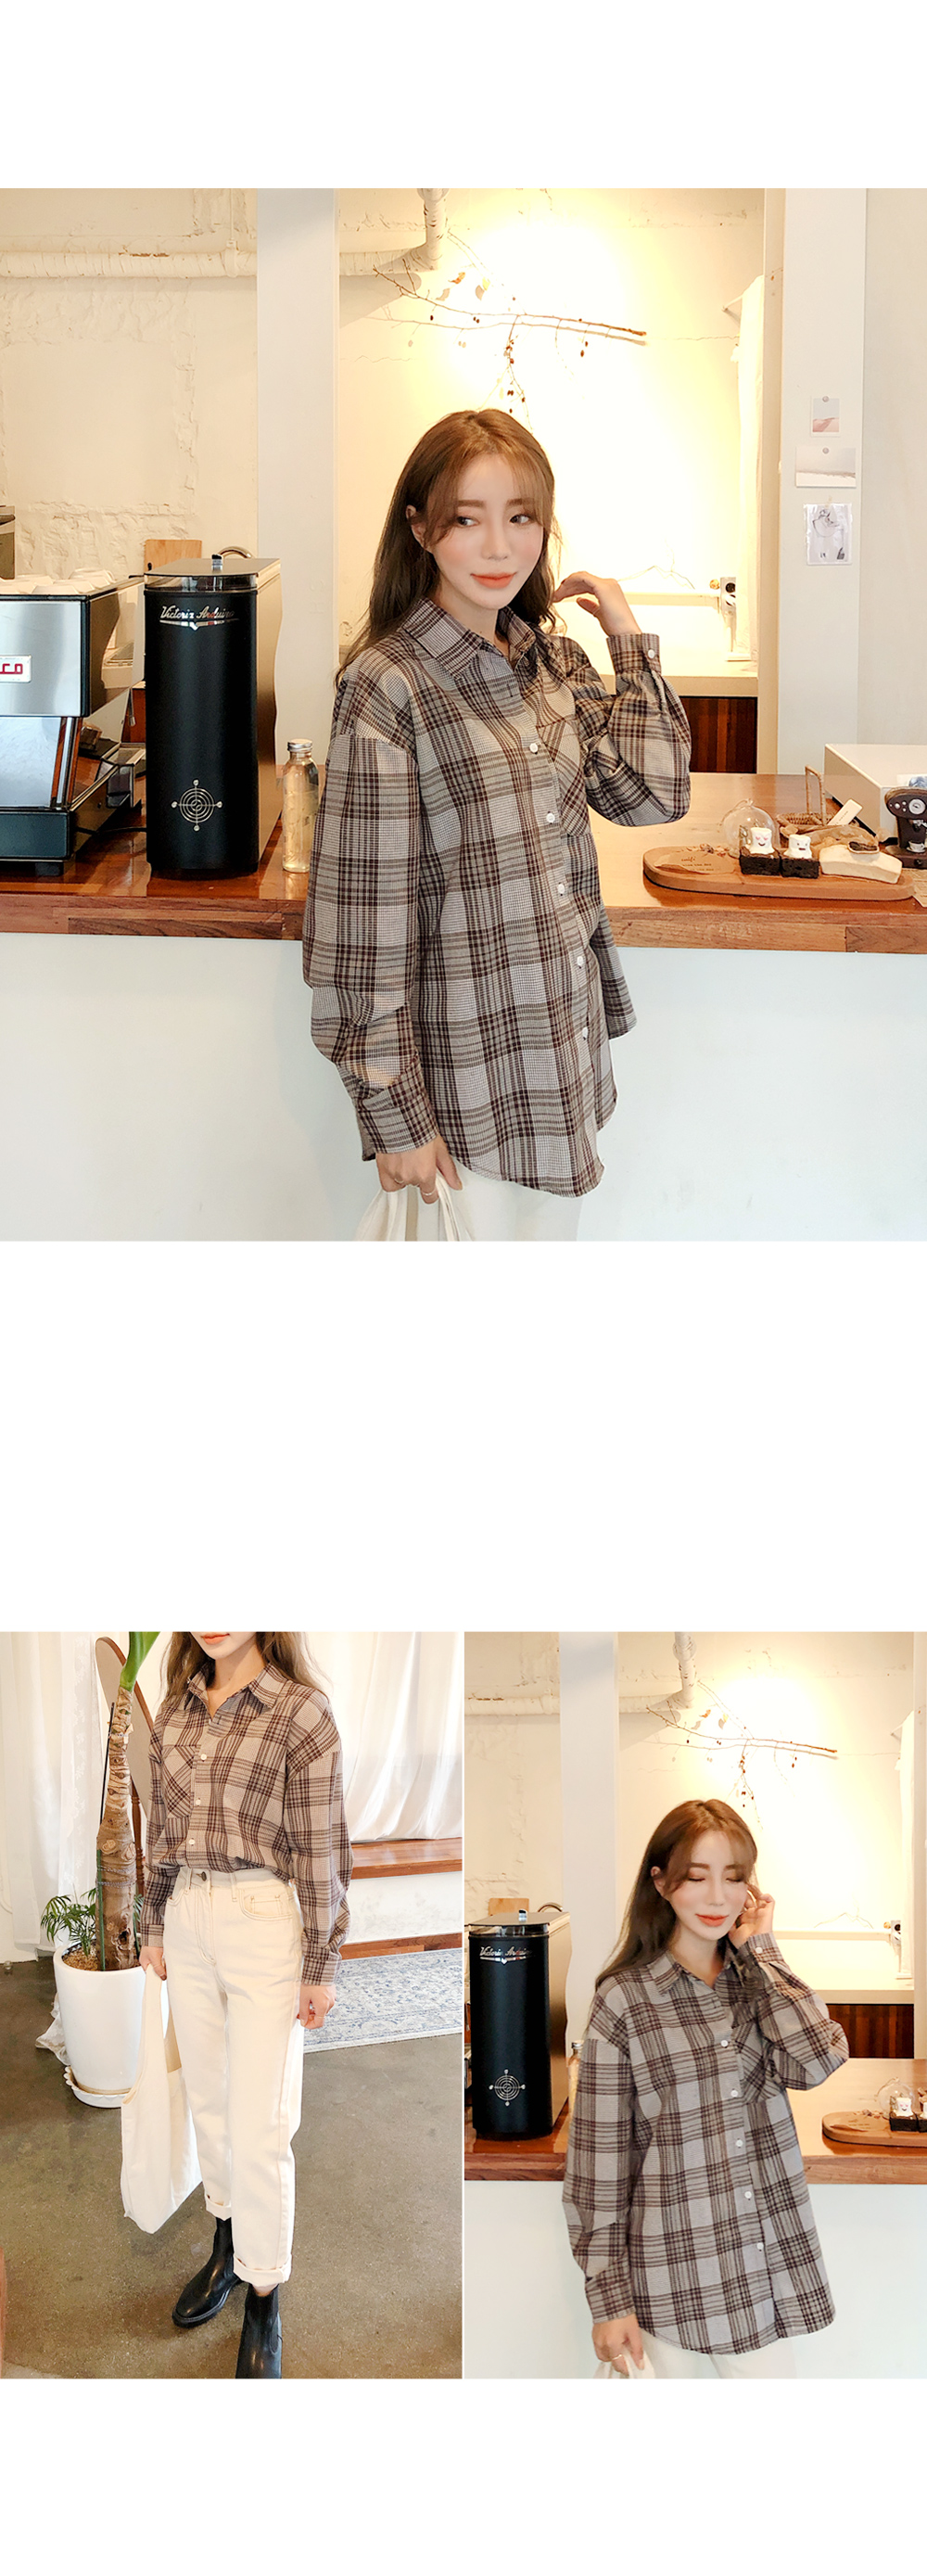 Overfit checkered shirt